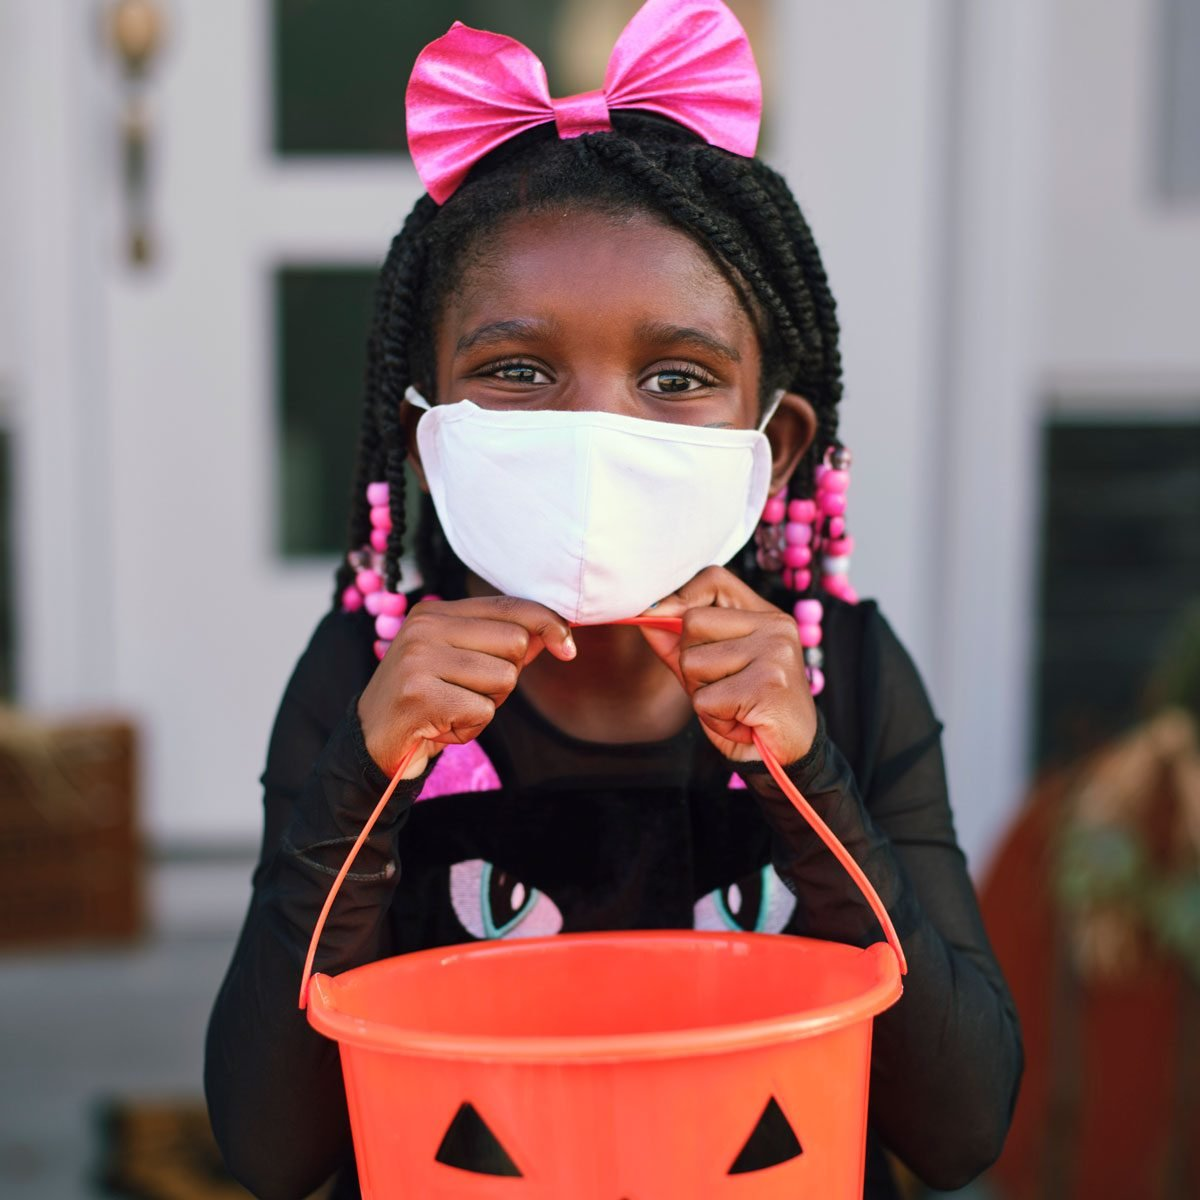 Halloween Health and Safety Tips for 2021